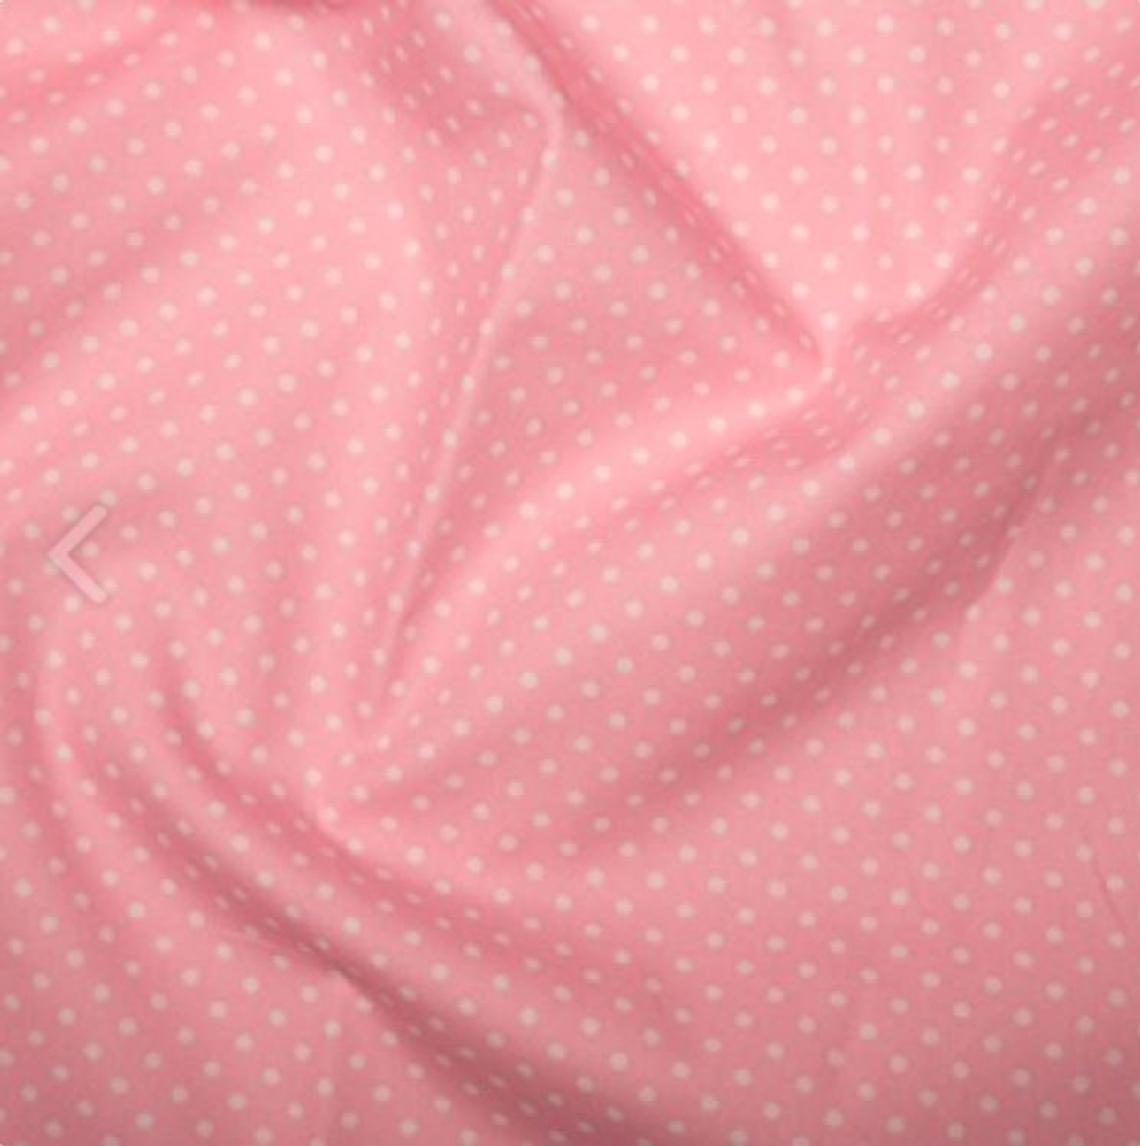 Excellent Quality Pink 3mm Spotty Polka Dot 100% Cotton Poplin Fabric 130gsm Sewing Quilting Craft Home Decor